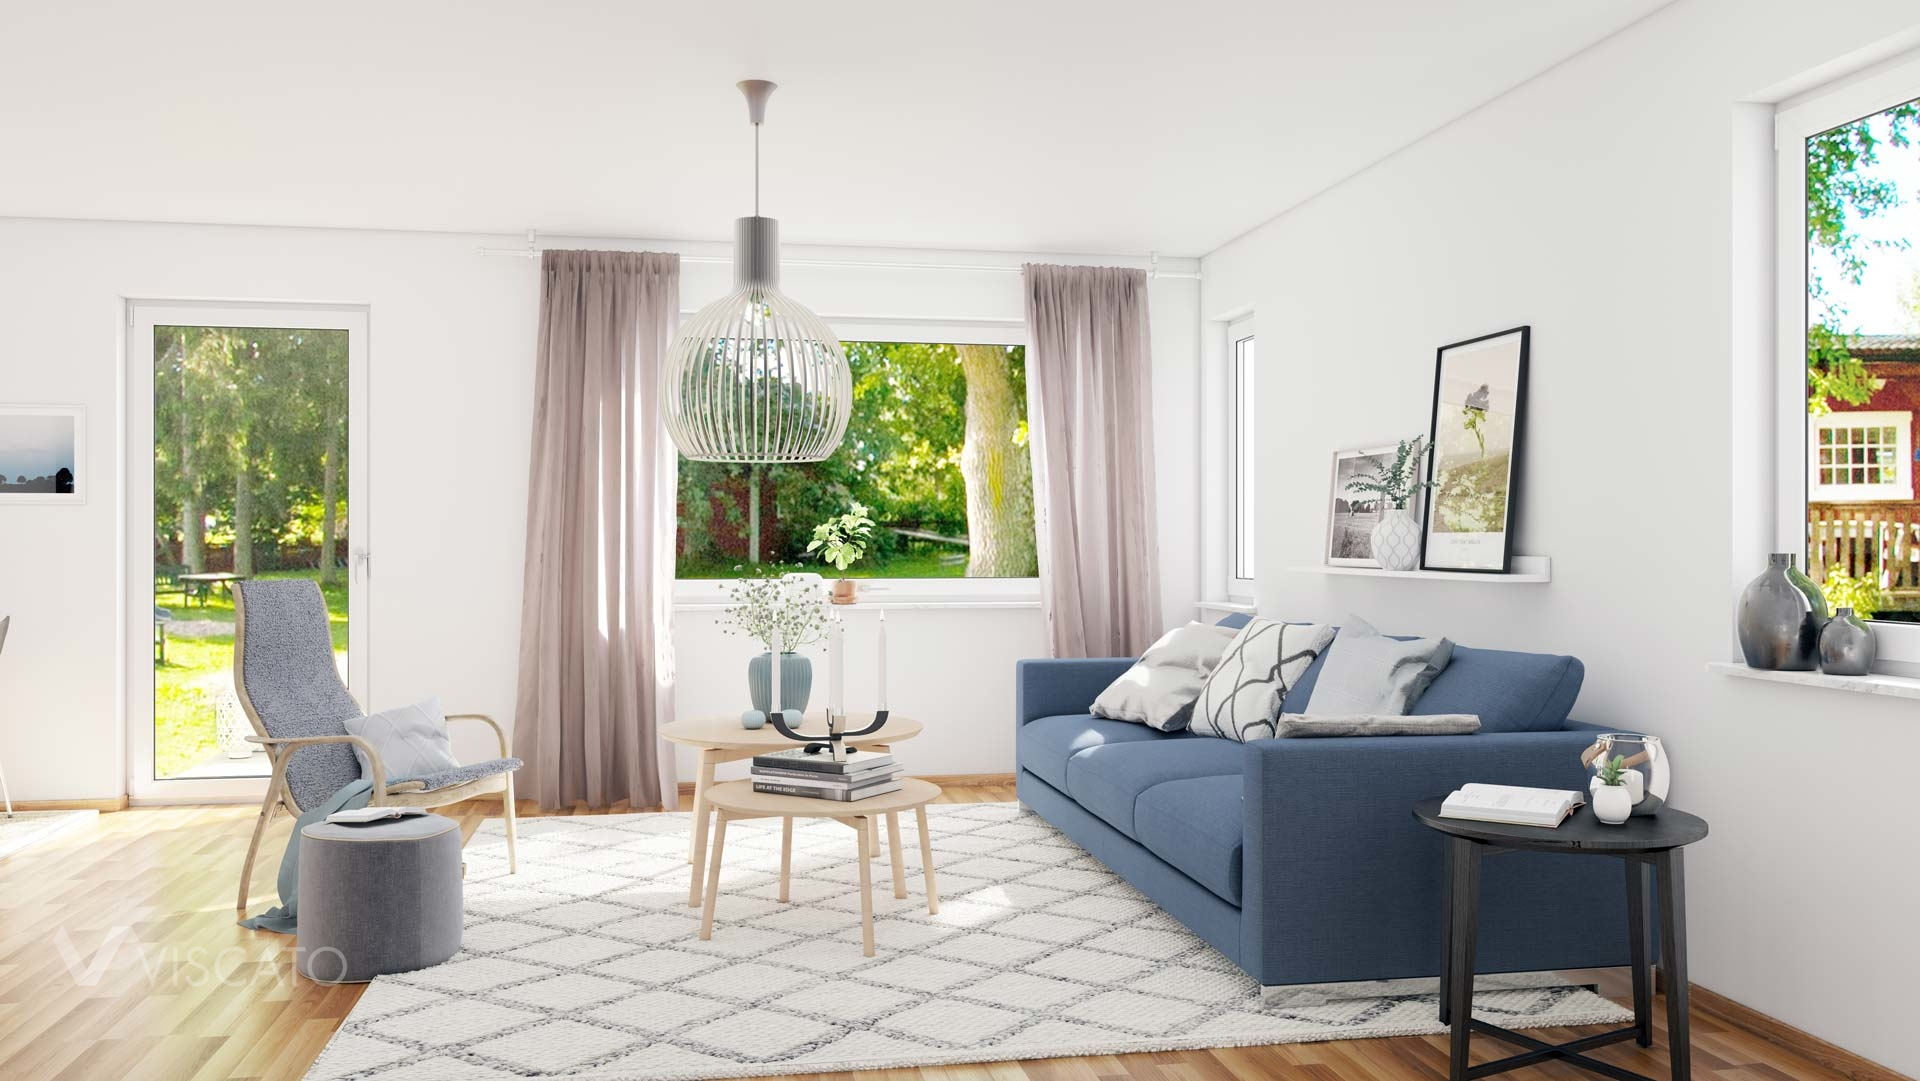 Living room with an access to the garden- Viscato 3D interior visualizations